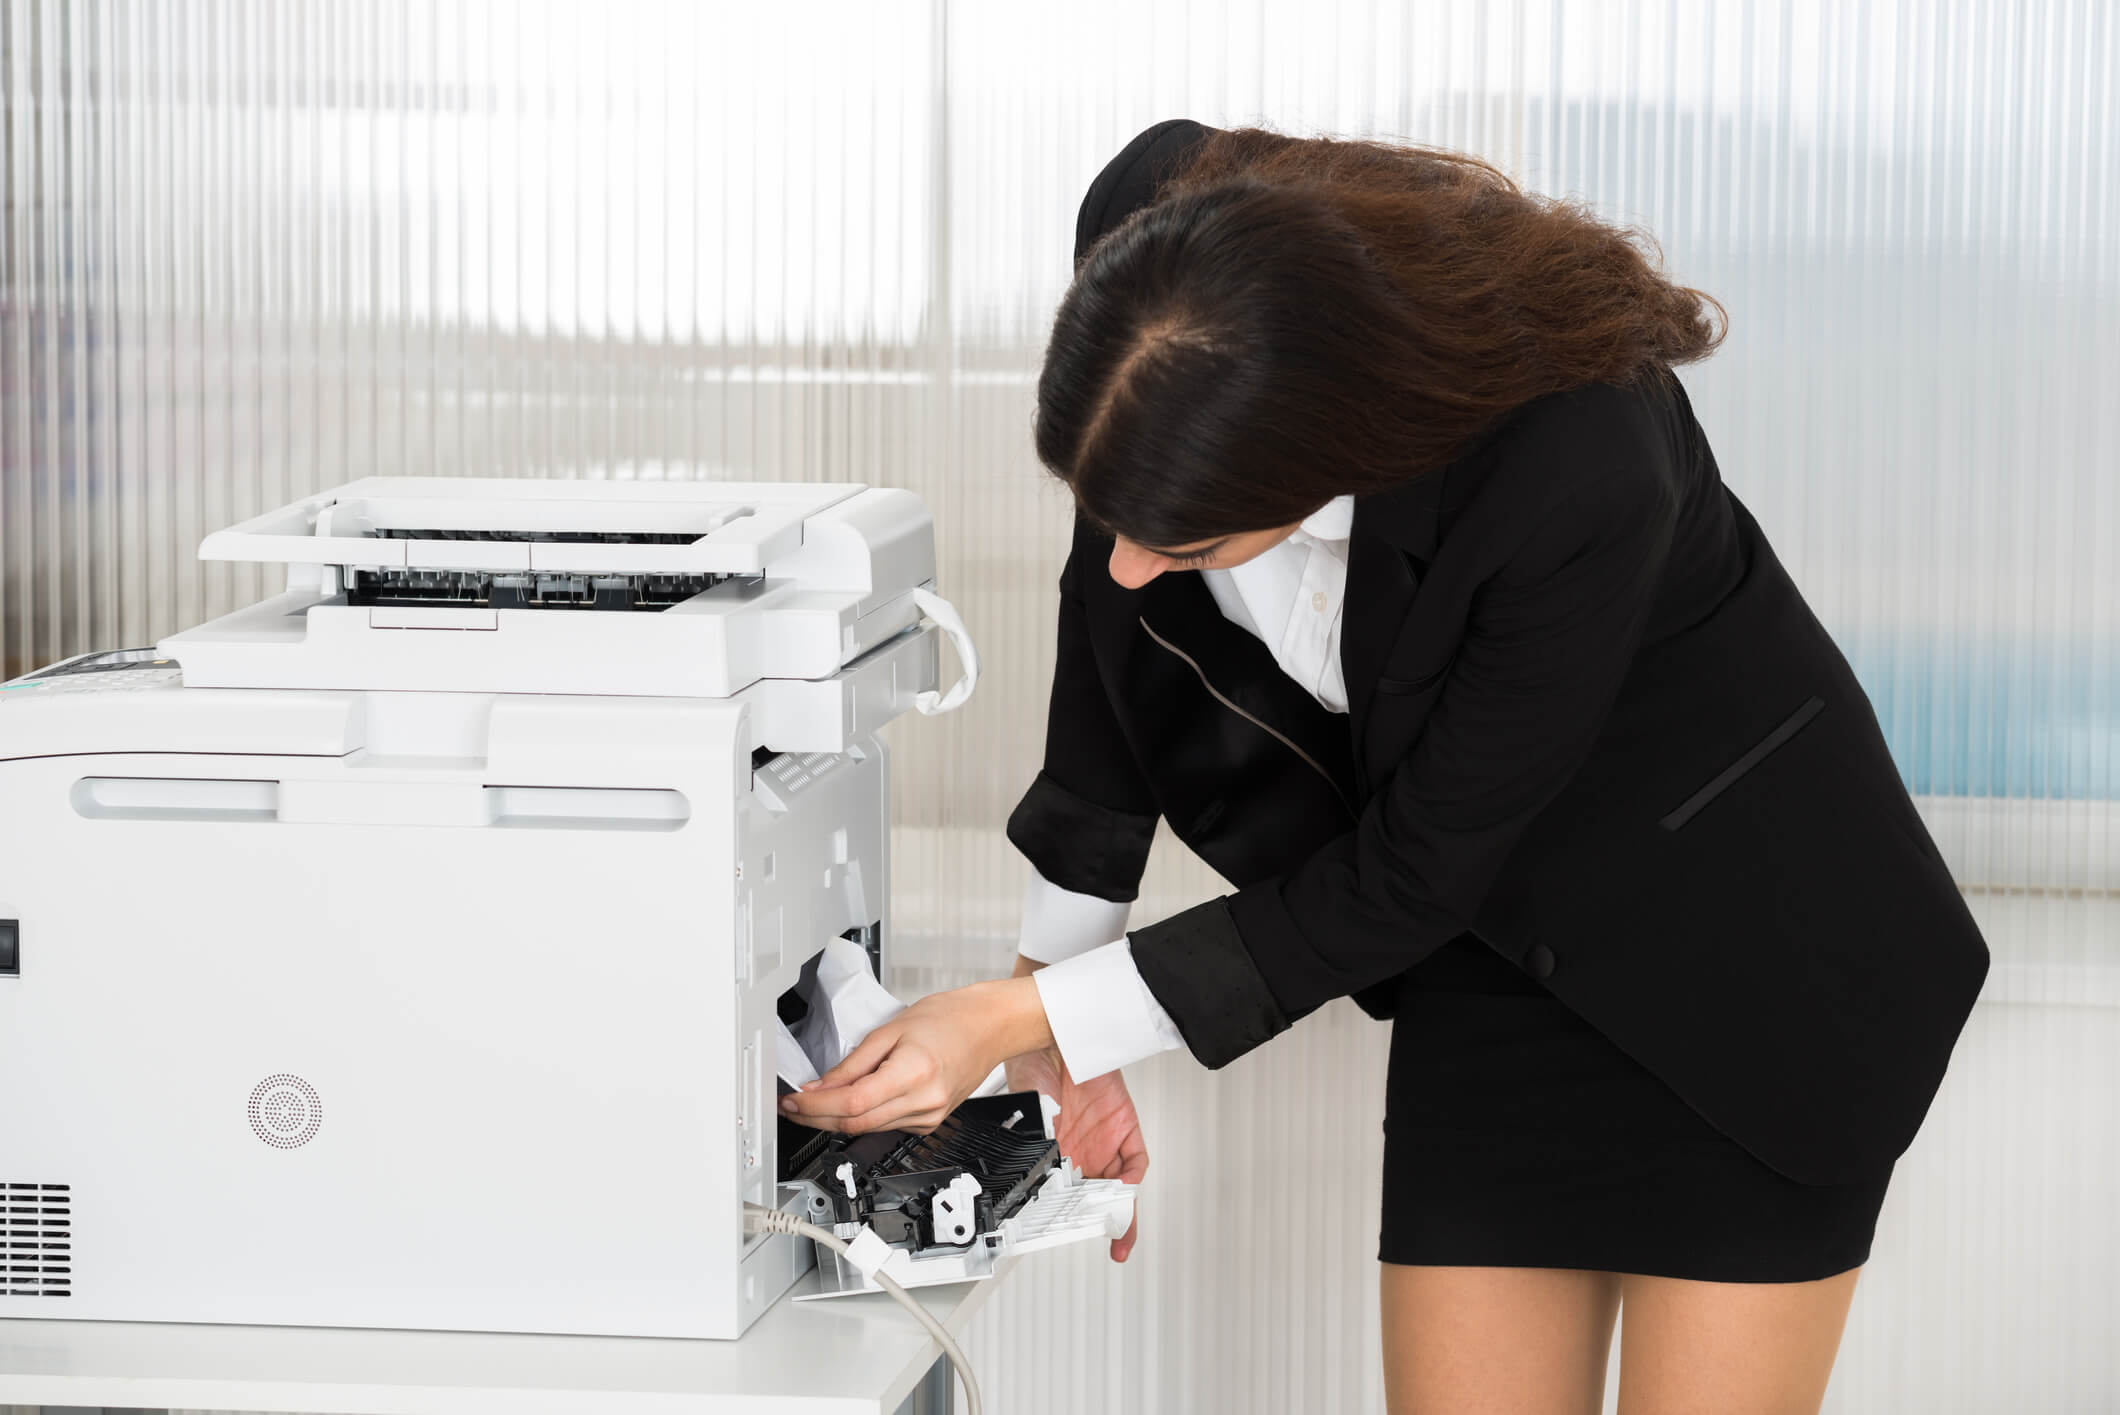 How to Avoid and Reduce Paper Jams in Your Printer and Copier